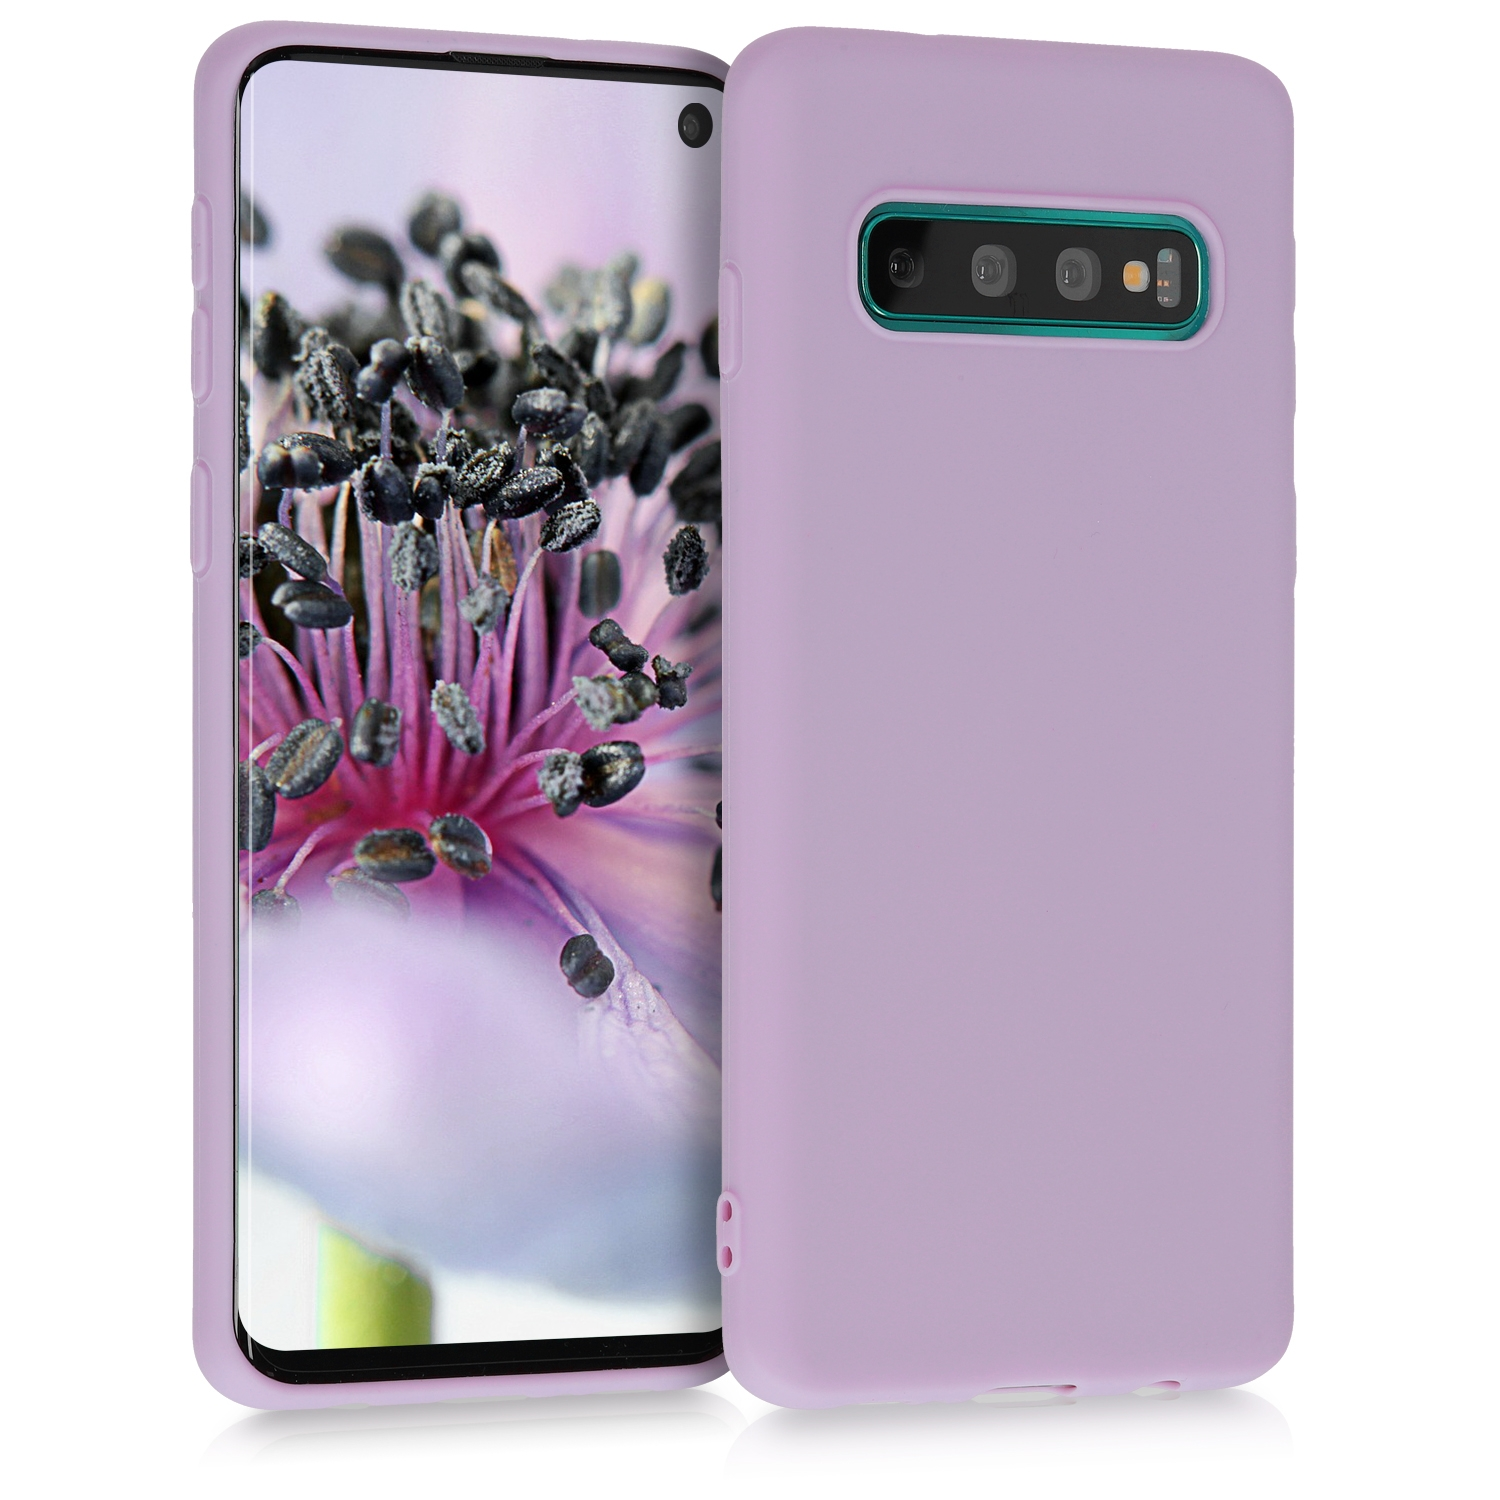 KW Θήκη Σιλικόνης Samsung Galaxy S10 - Soft Flexible Shock Absorbent Protective - Mauve (47447.140)